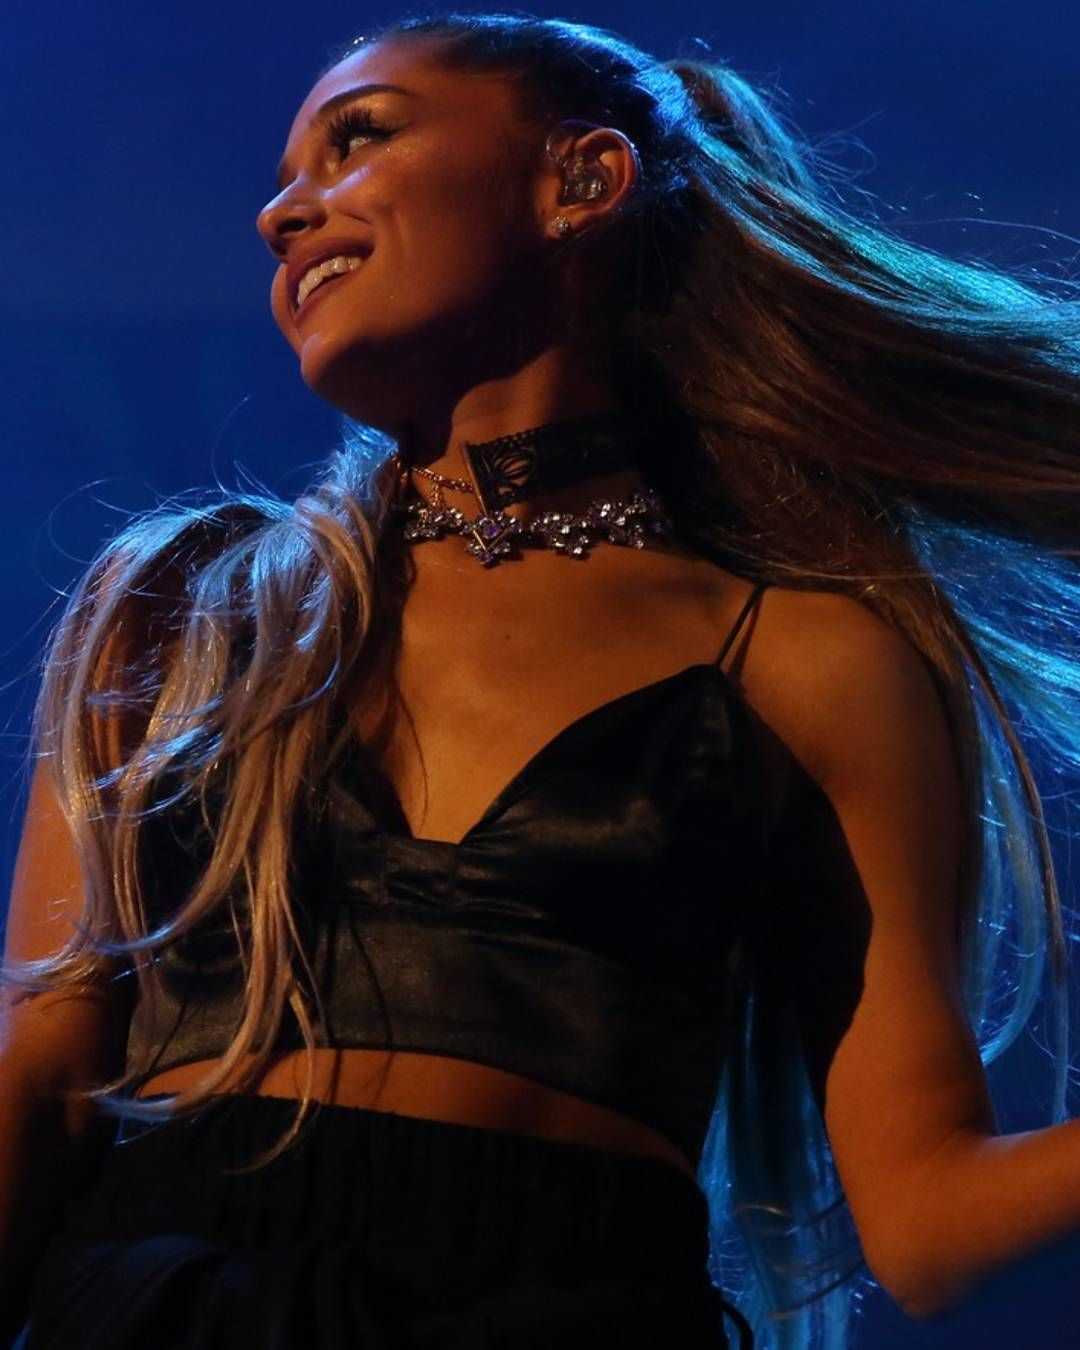 970 Curtidas 7 Comentarios Hq Pictures Of Ariana